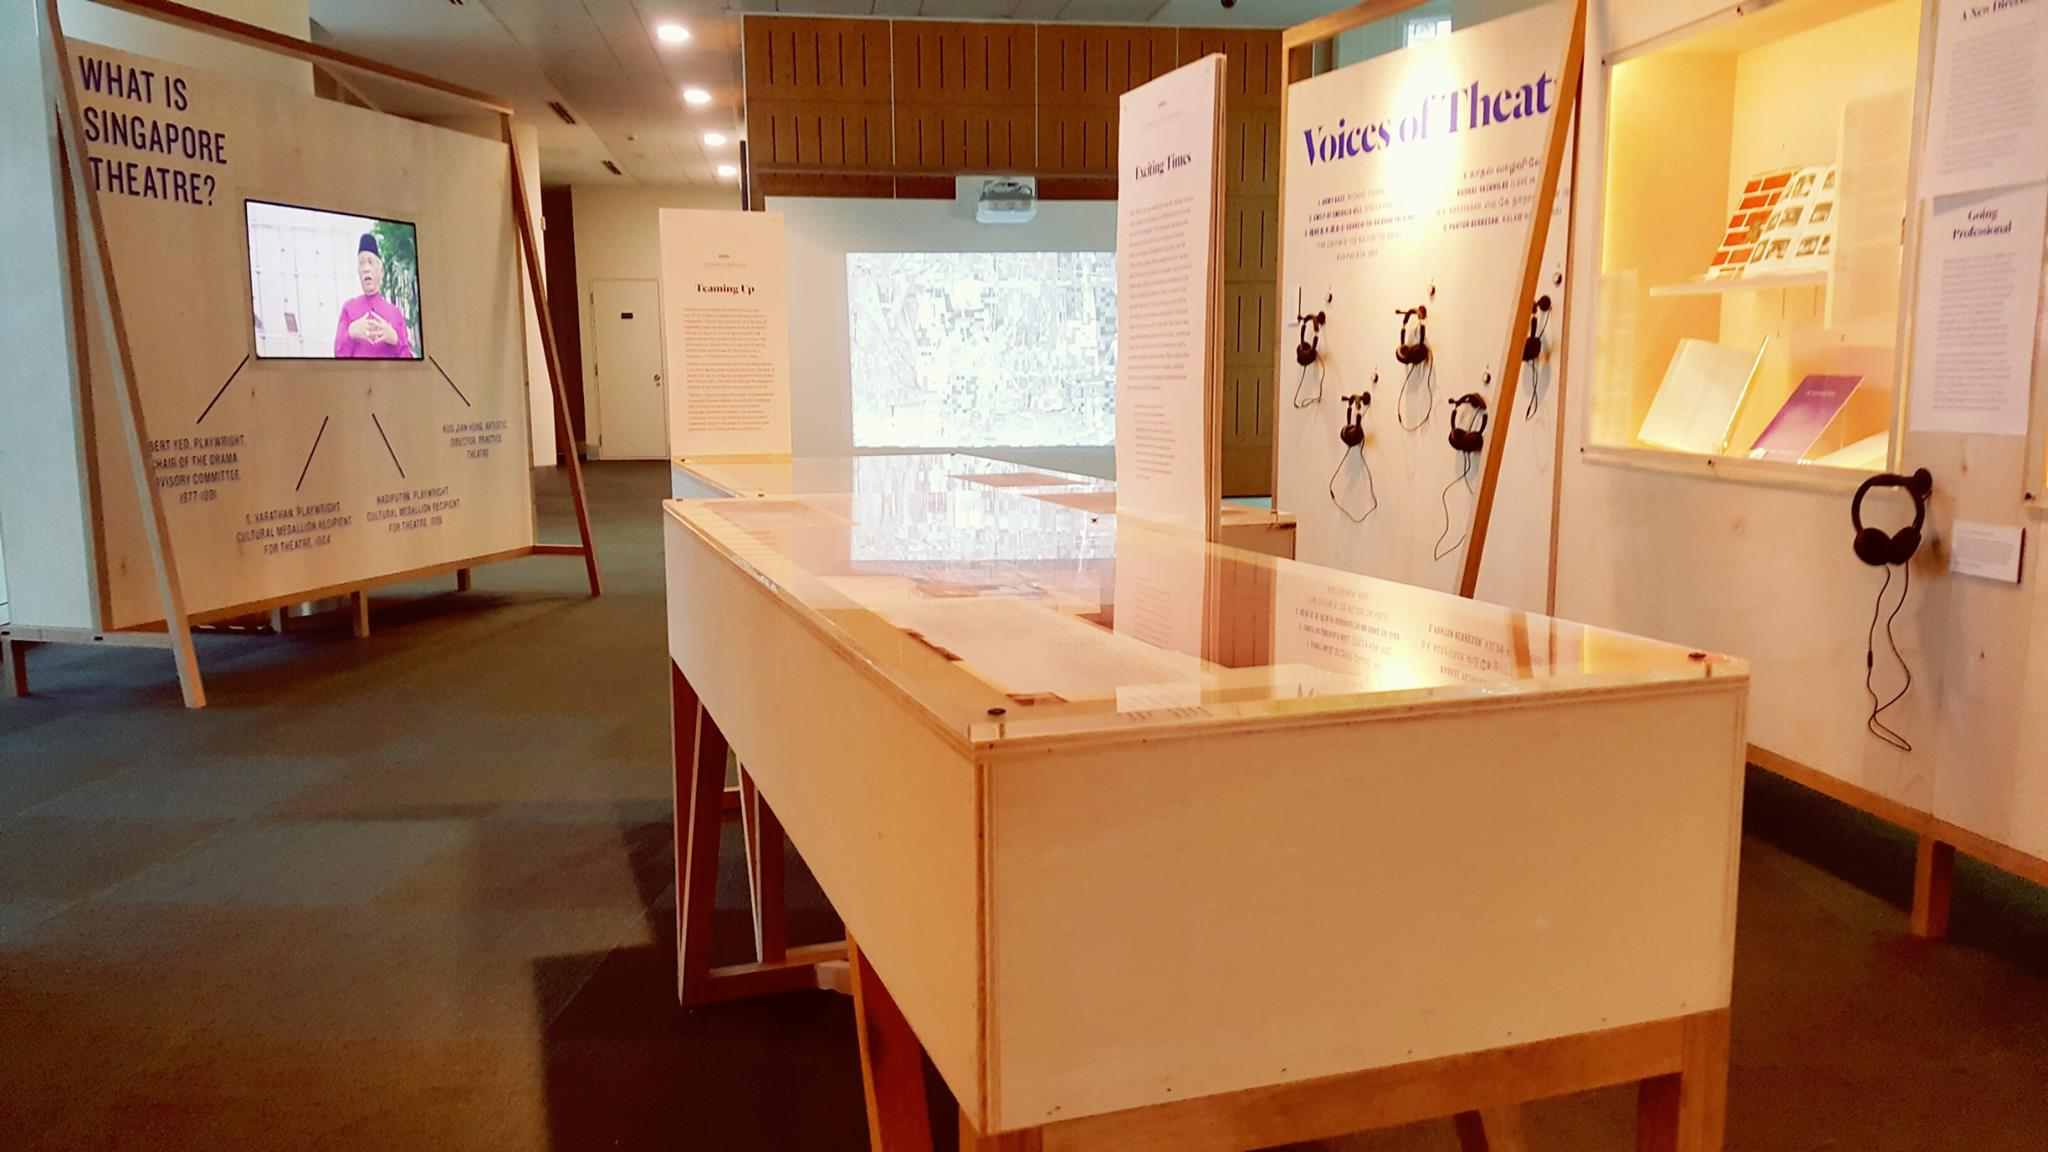 A table showcase is in the middle. On the left, there is a wall with a TV screen, showing a video. On the right wall, there is a wall showcase and several headphones for playing sound samples.